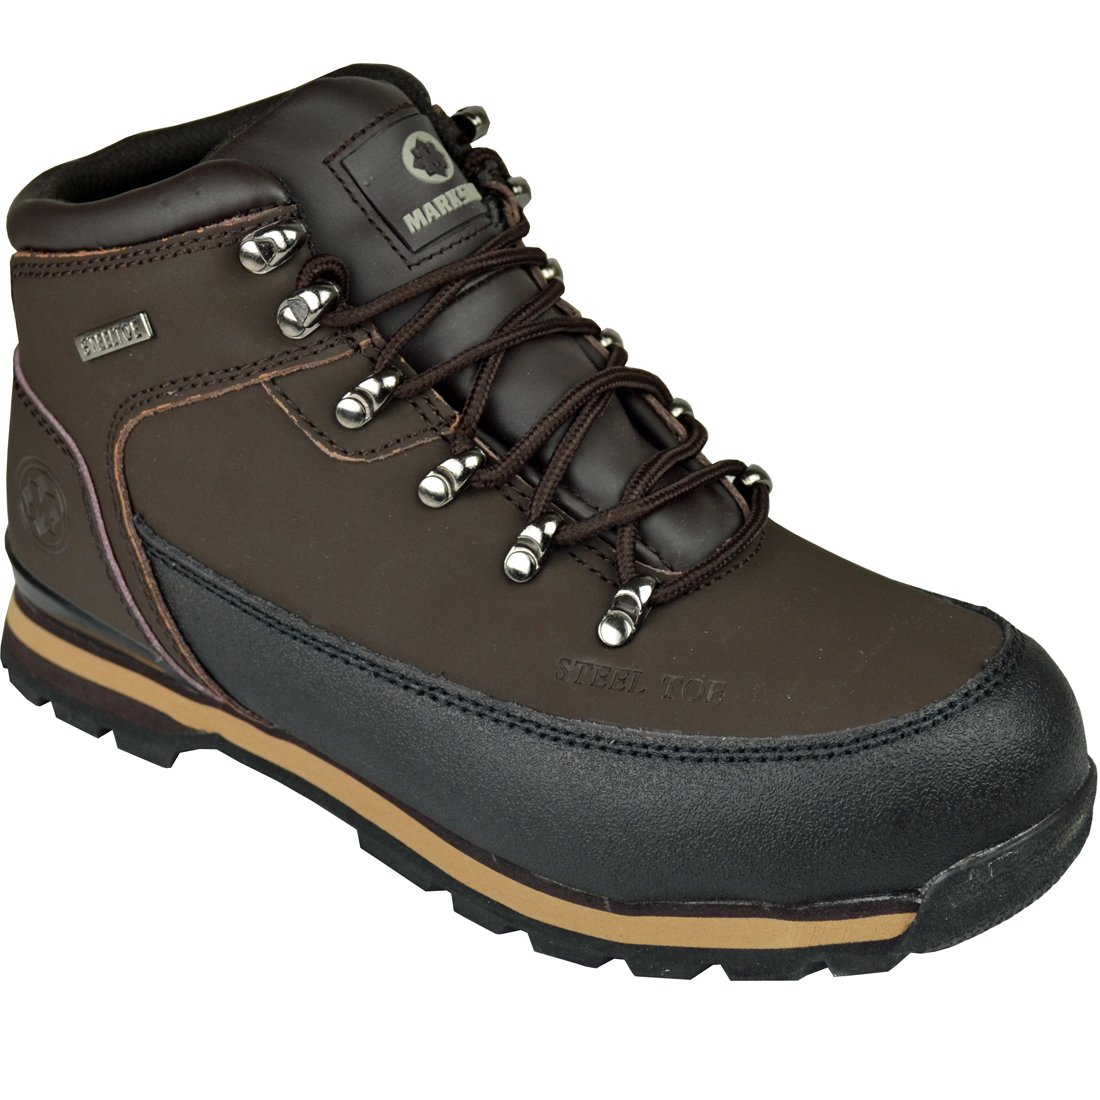 MENS LIGHTWEIGHT STEEL TOE CAP SAFETY WORK HIKING TRAINERS SHOES LEATHER BOOTS